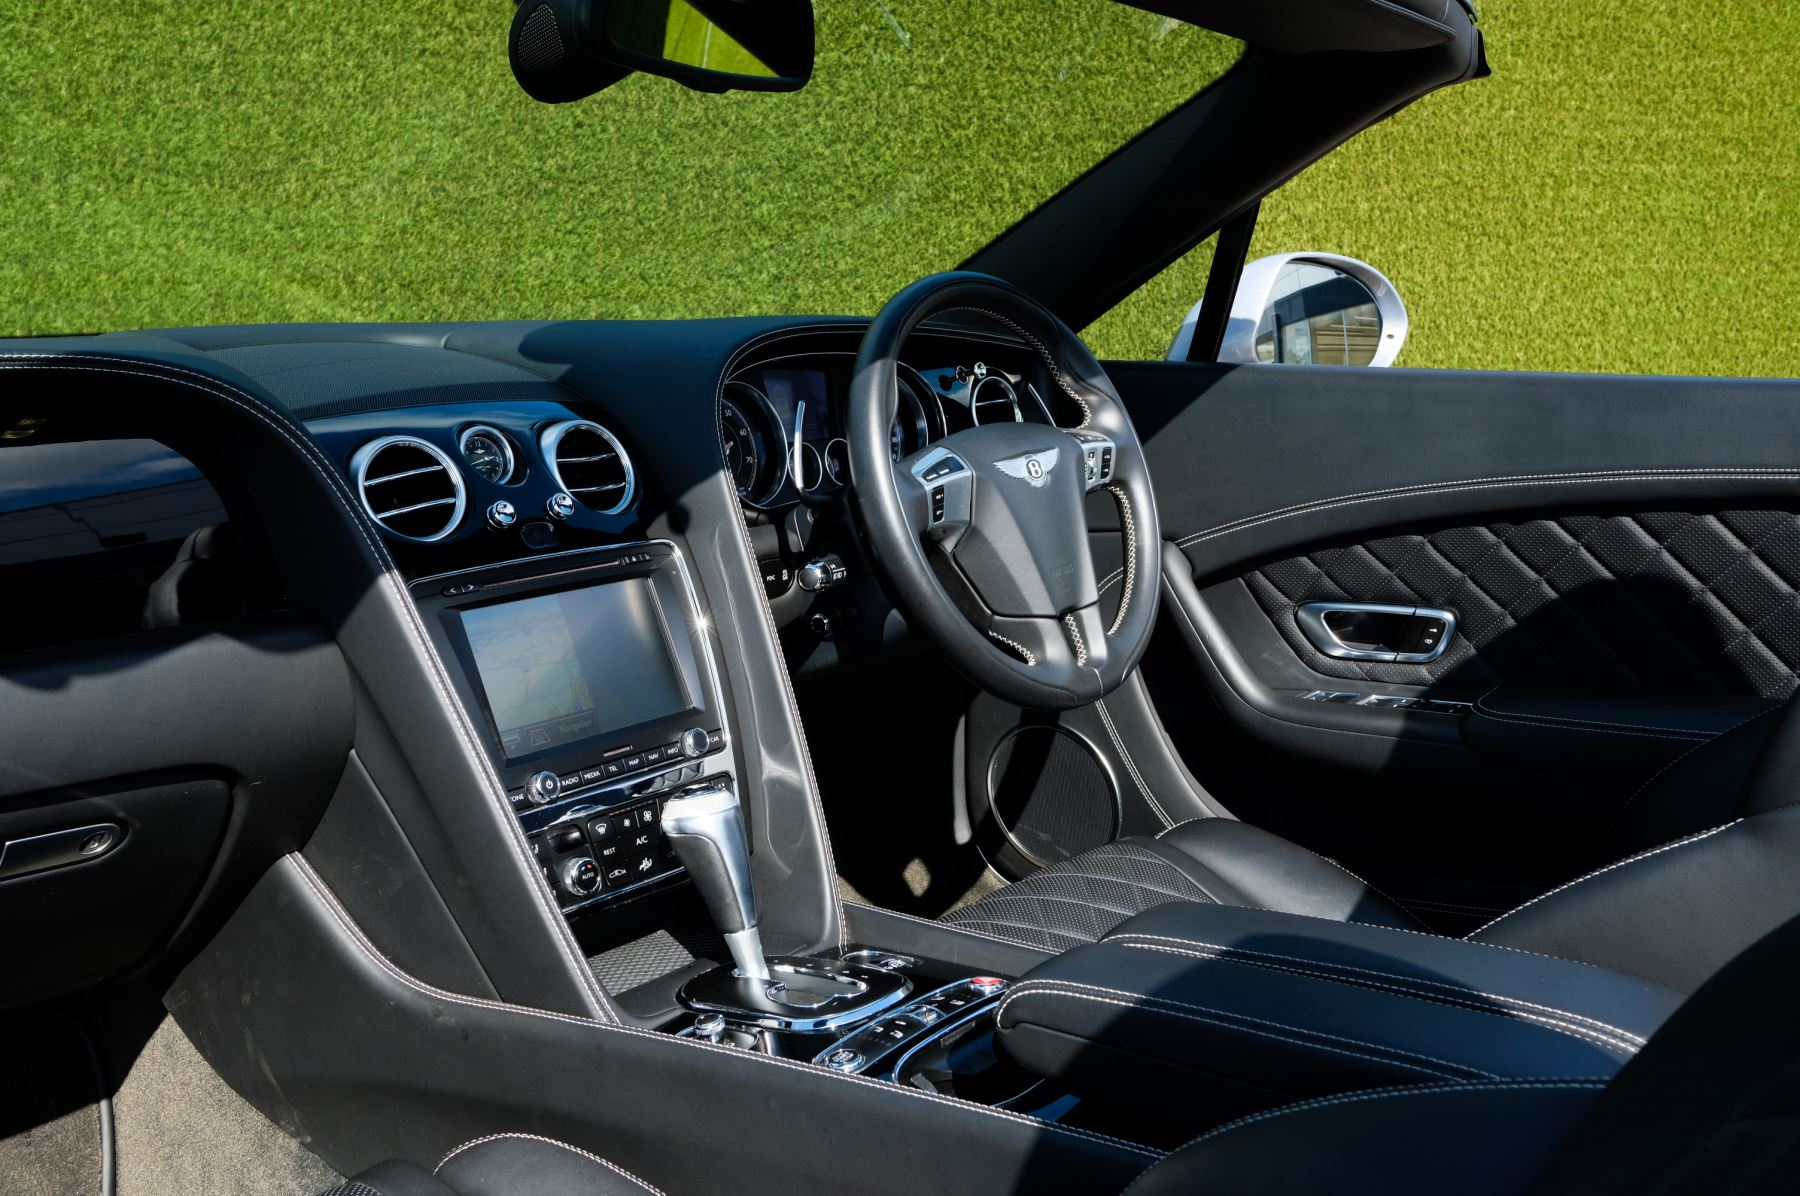 Bentley Continental GTC 4.0 V8 S Mulliner Driving Spec - Ventilated Front Seats with Massage Function image 11